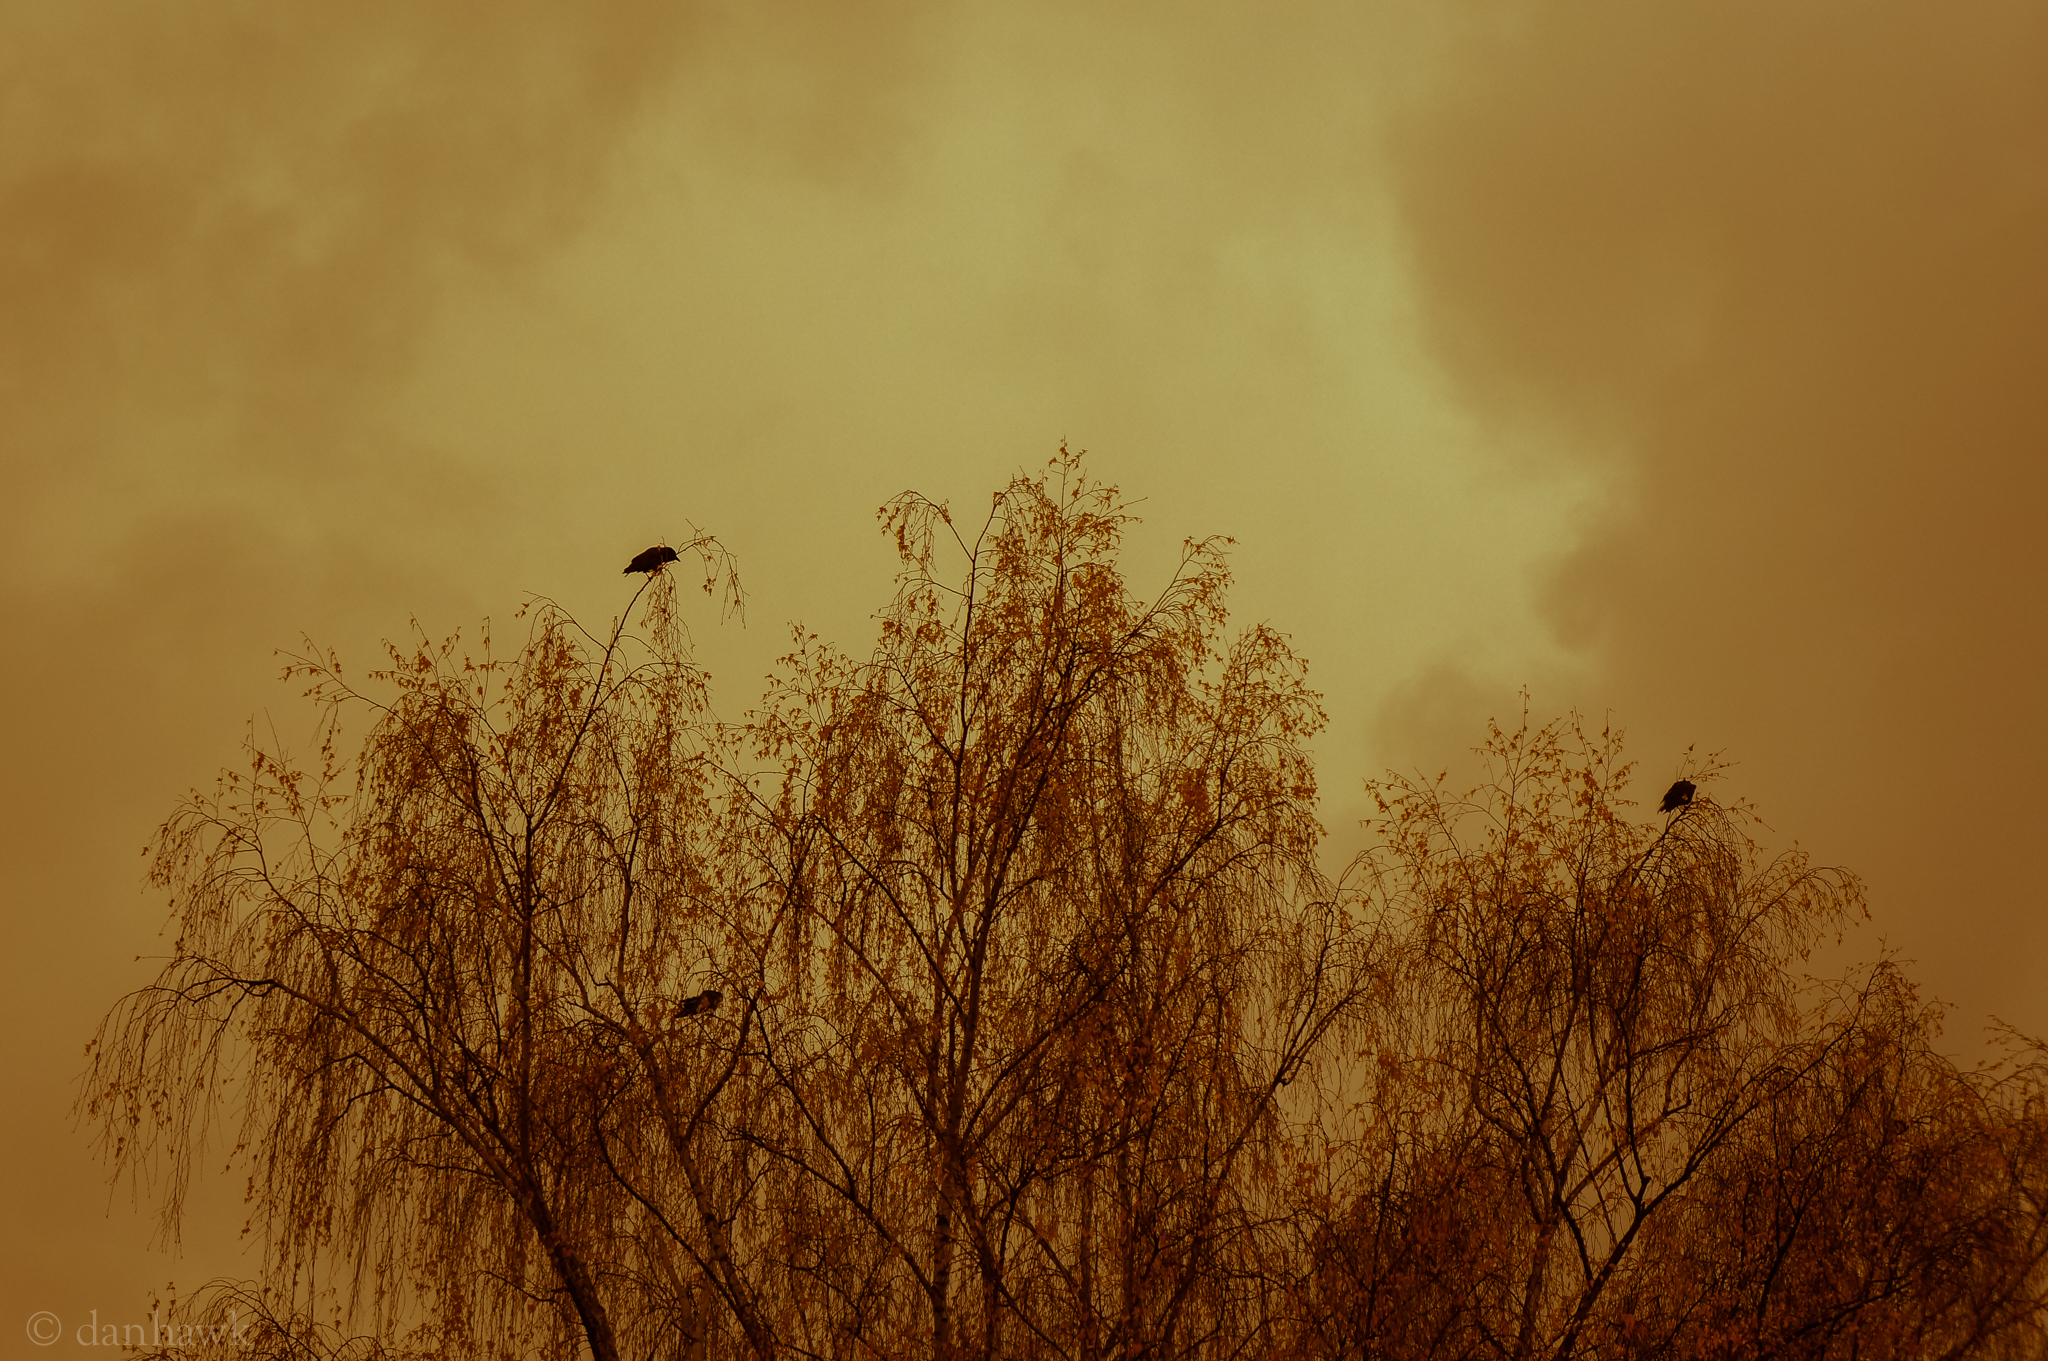 Crows | 365 Project | Oct. 24th, 2012